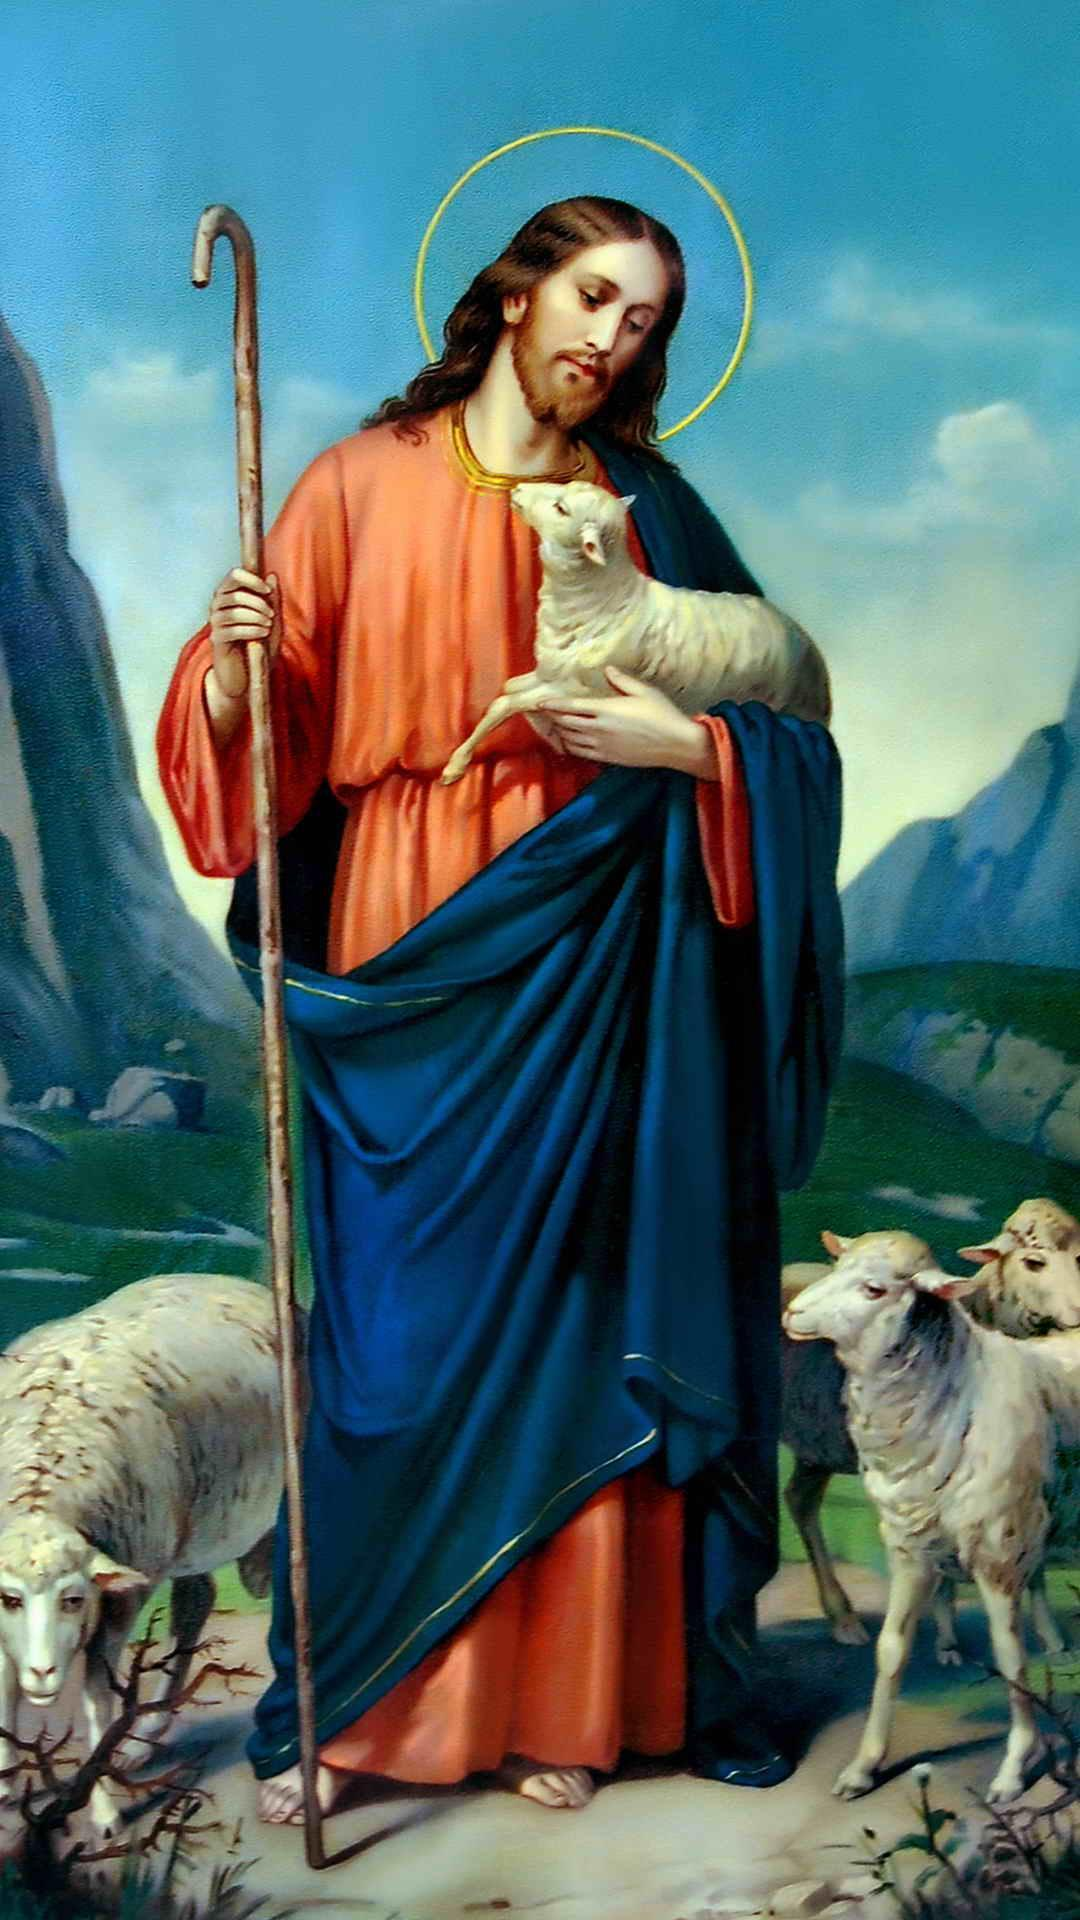 Jesus Wallpapers For Android Apk Download